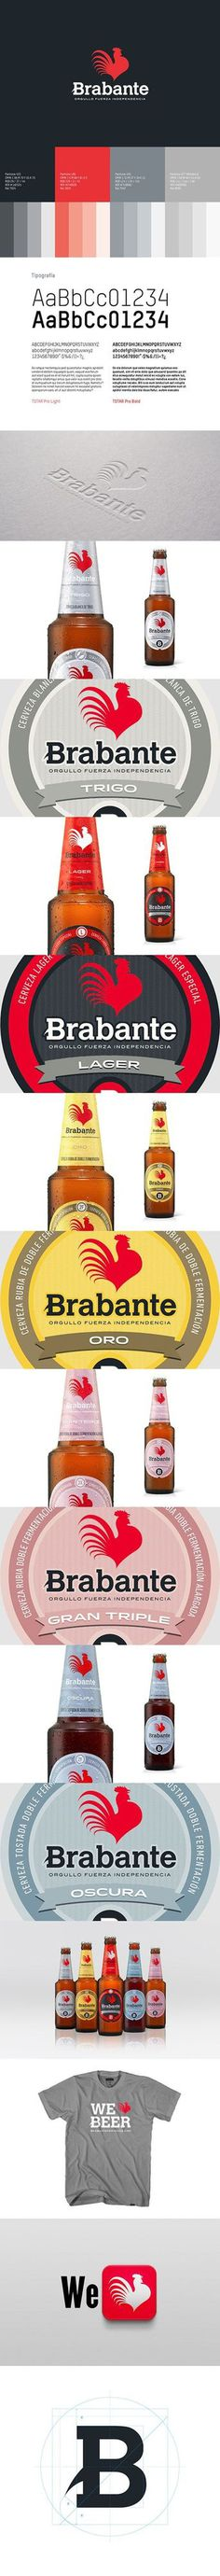 Brabante new visual identity and branding | Designer: TritonePD #branding #packaging #design #graphic #logo